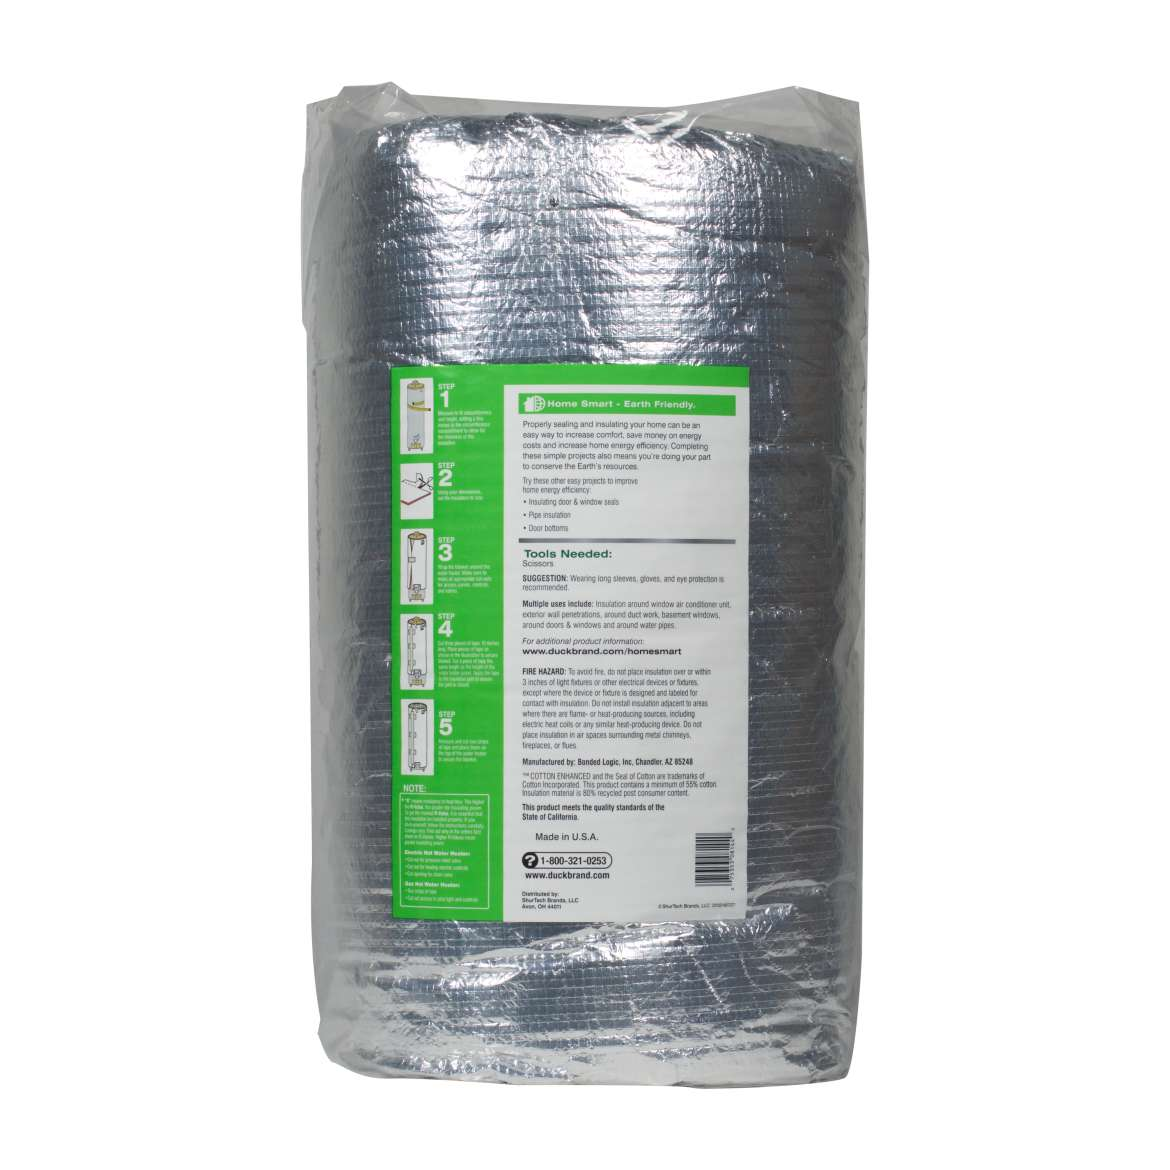 Foil Insulation Blanket Duck Brand Water Heater Insulation Blanket 1 8 In X 48 In X 75 In